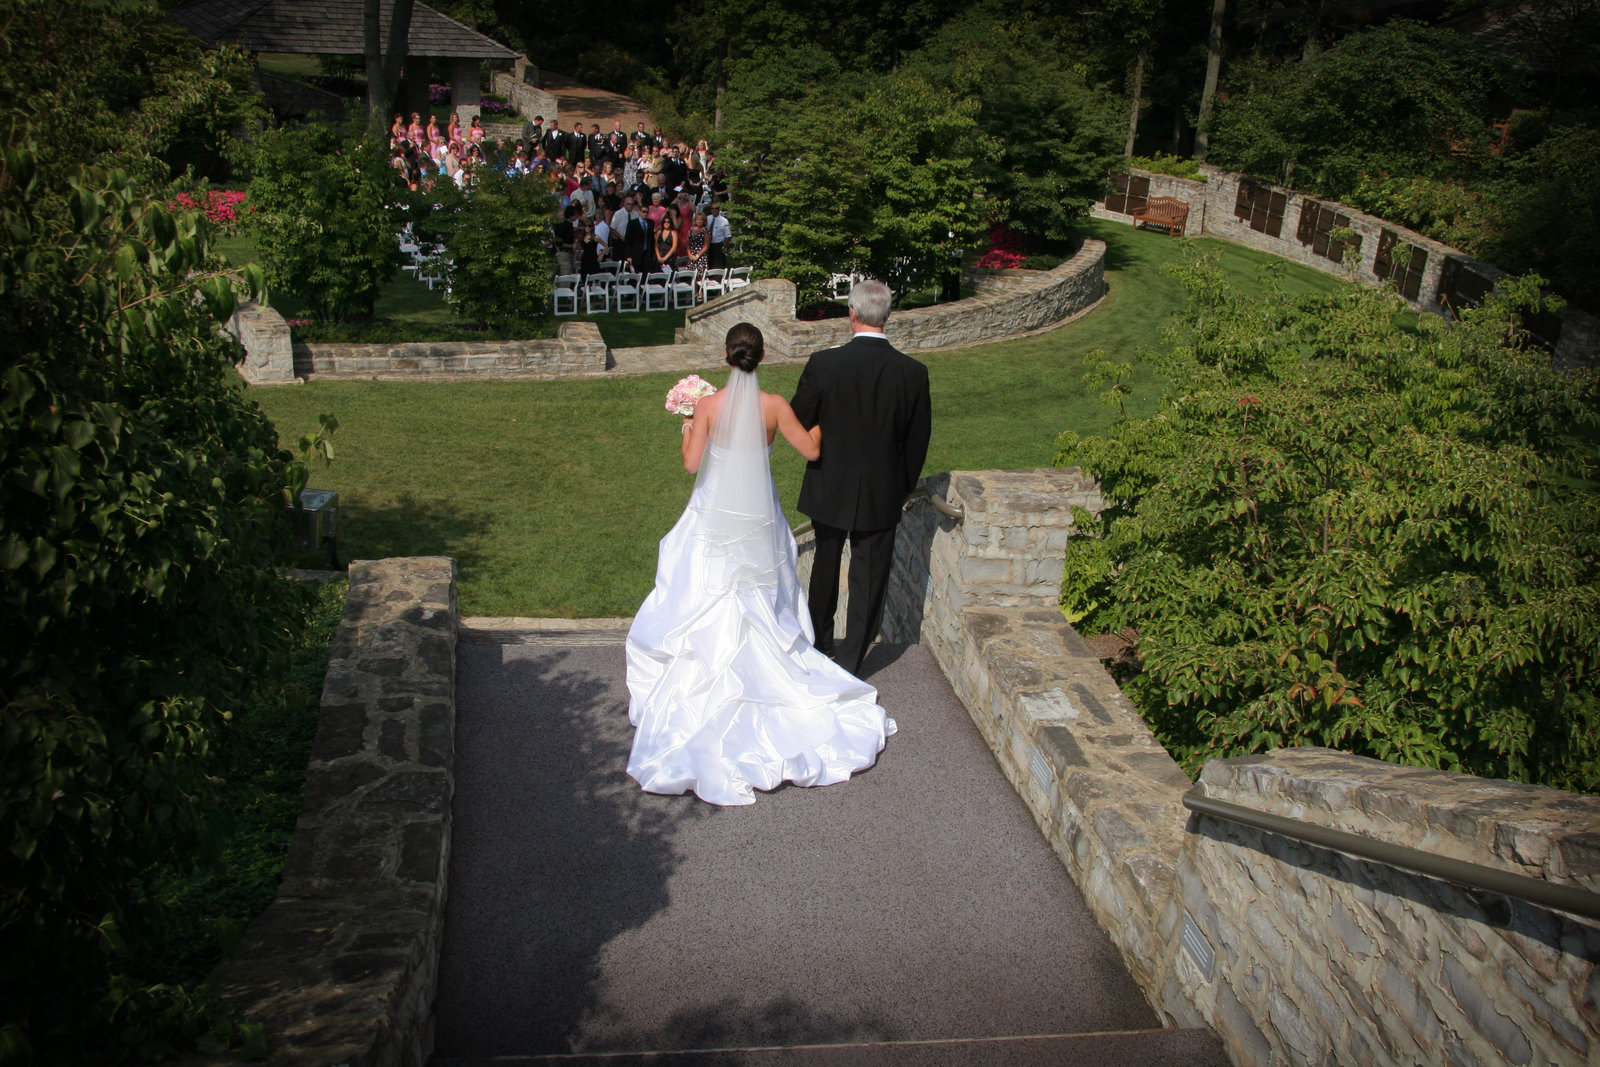 Beautiful Upscale, Outdoor Wedding Ceremony and Receptions with Complete Planning and Design in Columbus Ohio